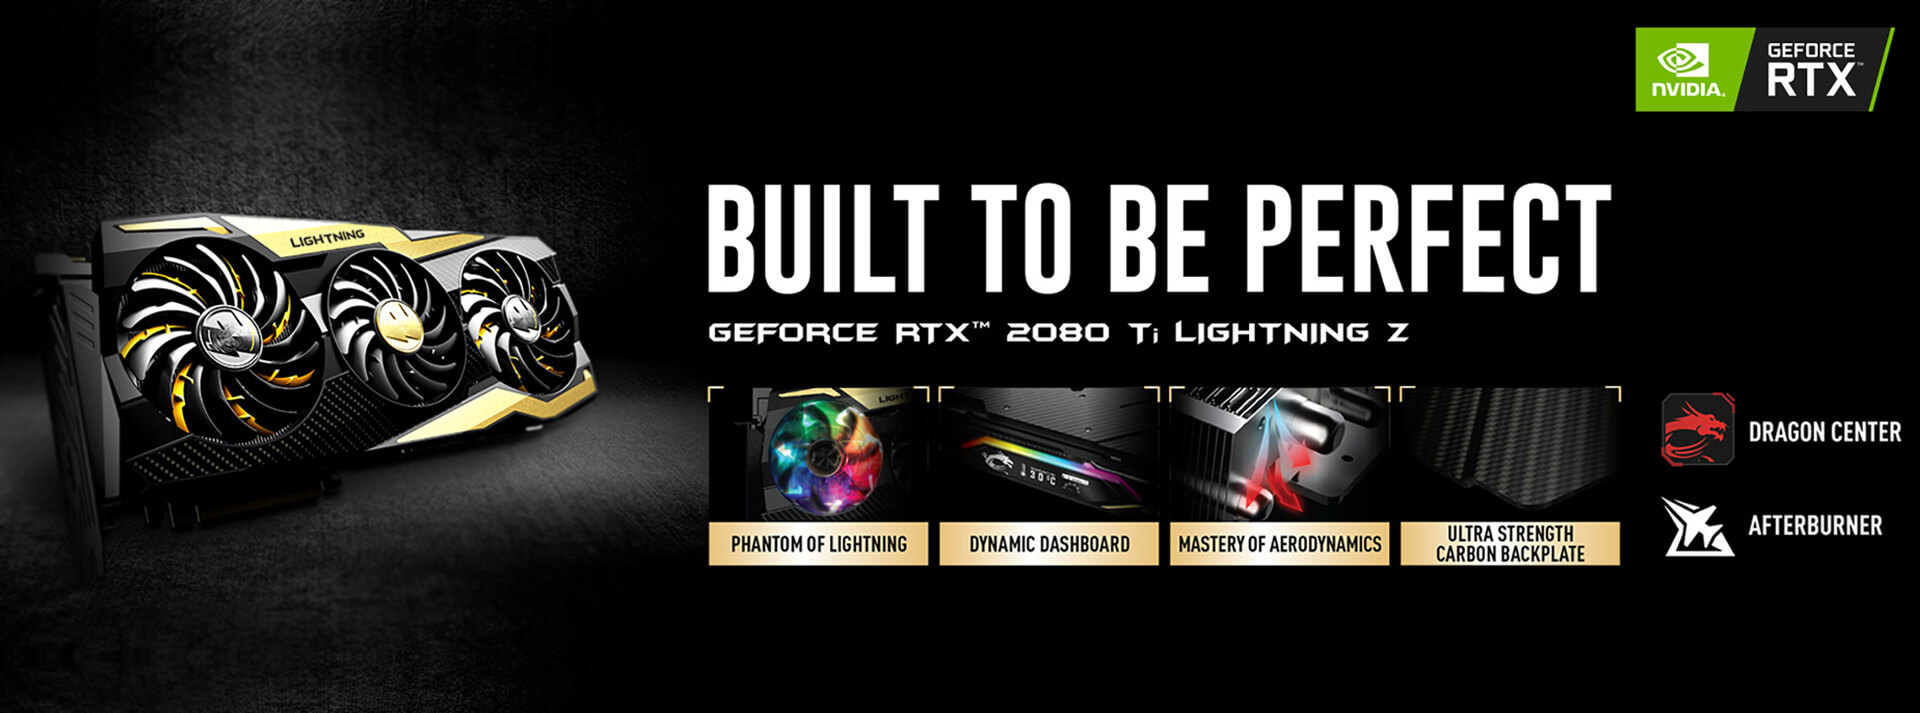 Buy MSI RTX 2080 Ti Lighting Z at Lowest Price in India - Mdcomputers.in